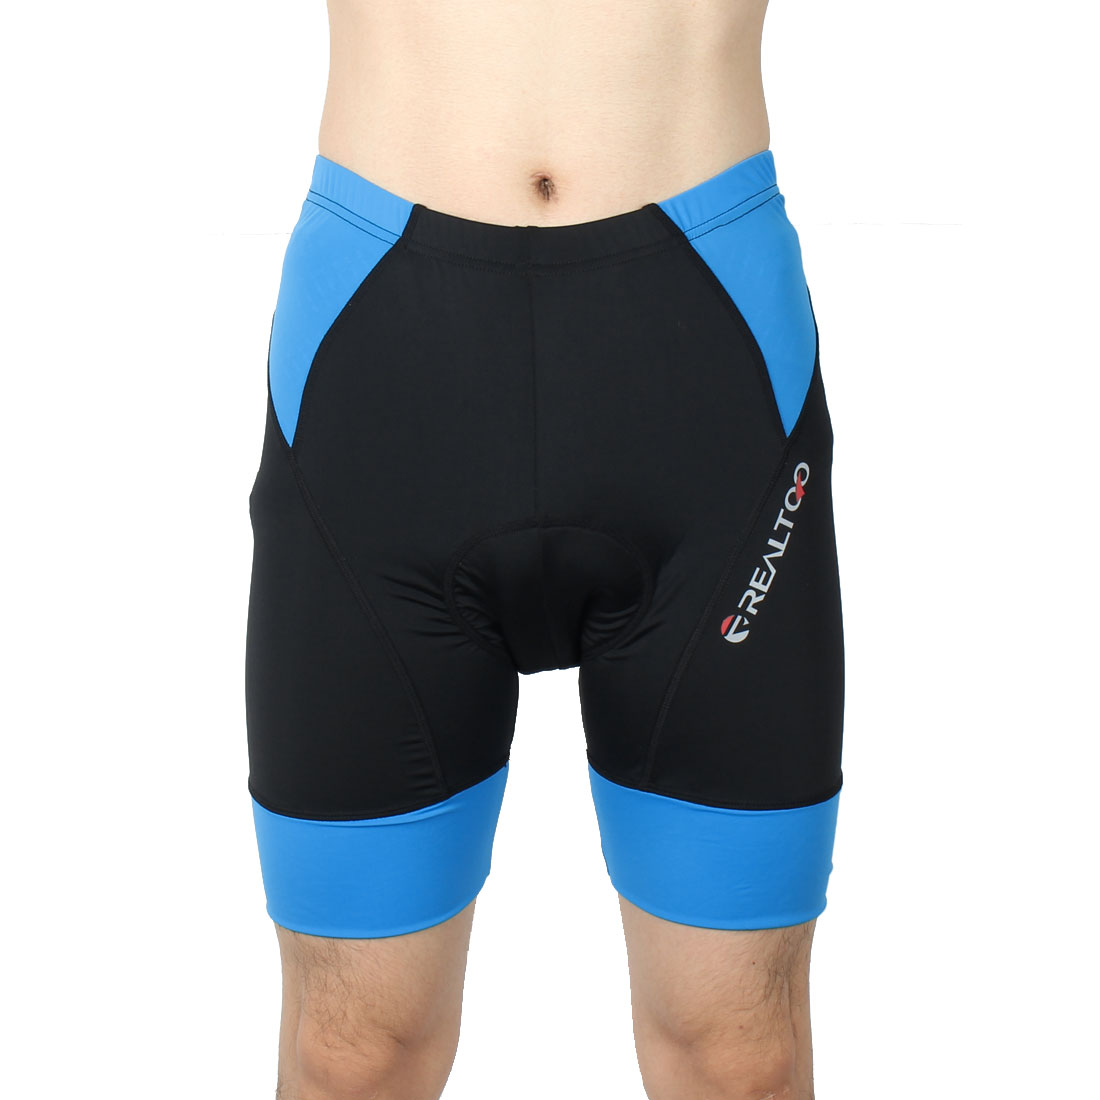 REALTOO Authorized Men Bicycle Underwear Cycling Shorts Black Blue L (W 36)